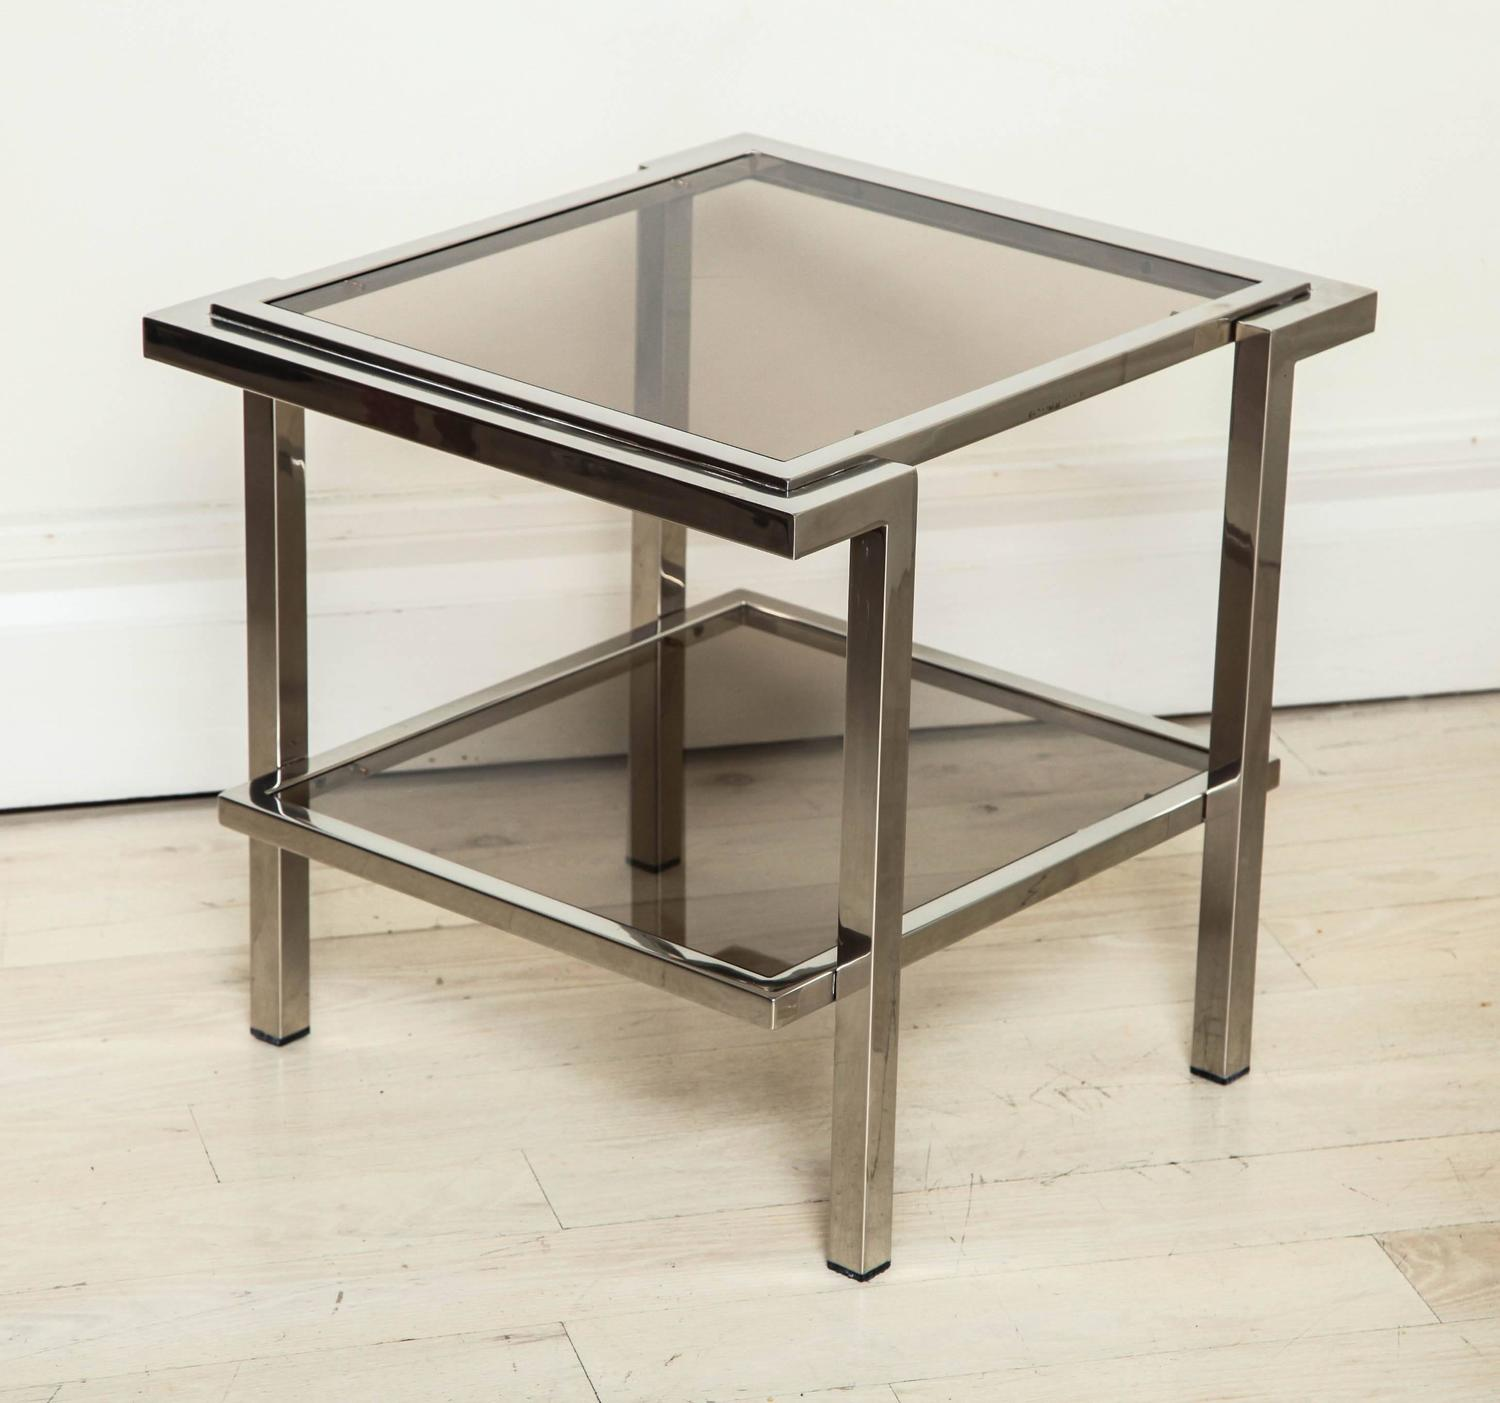 Modern Pair Of Chrome And Gray Glass Coffee Tables France Circa 1970 For Sale At 1stdibs